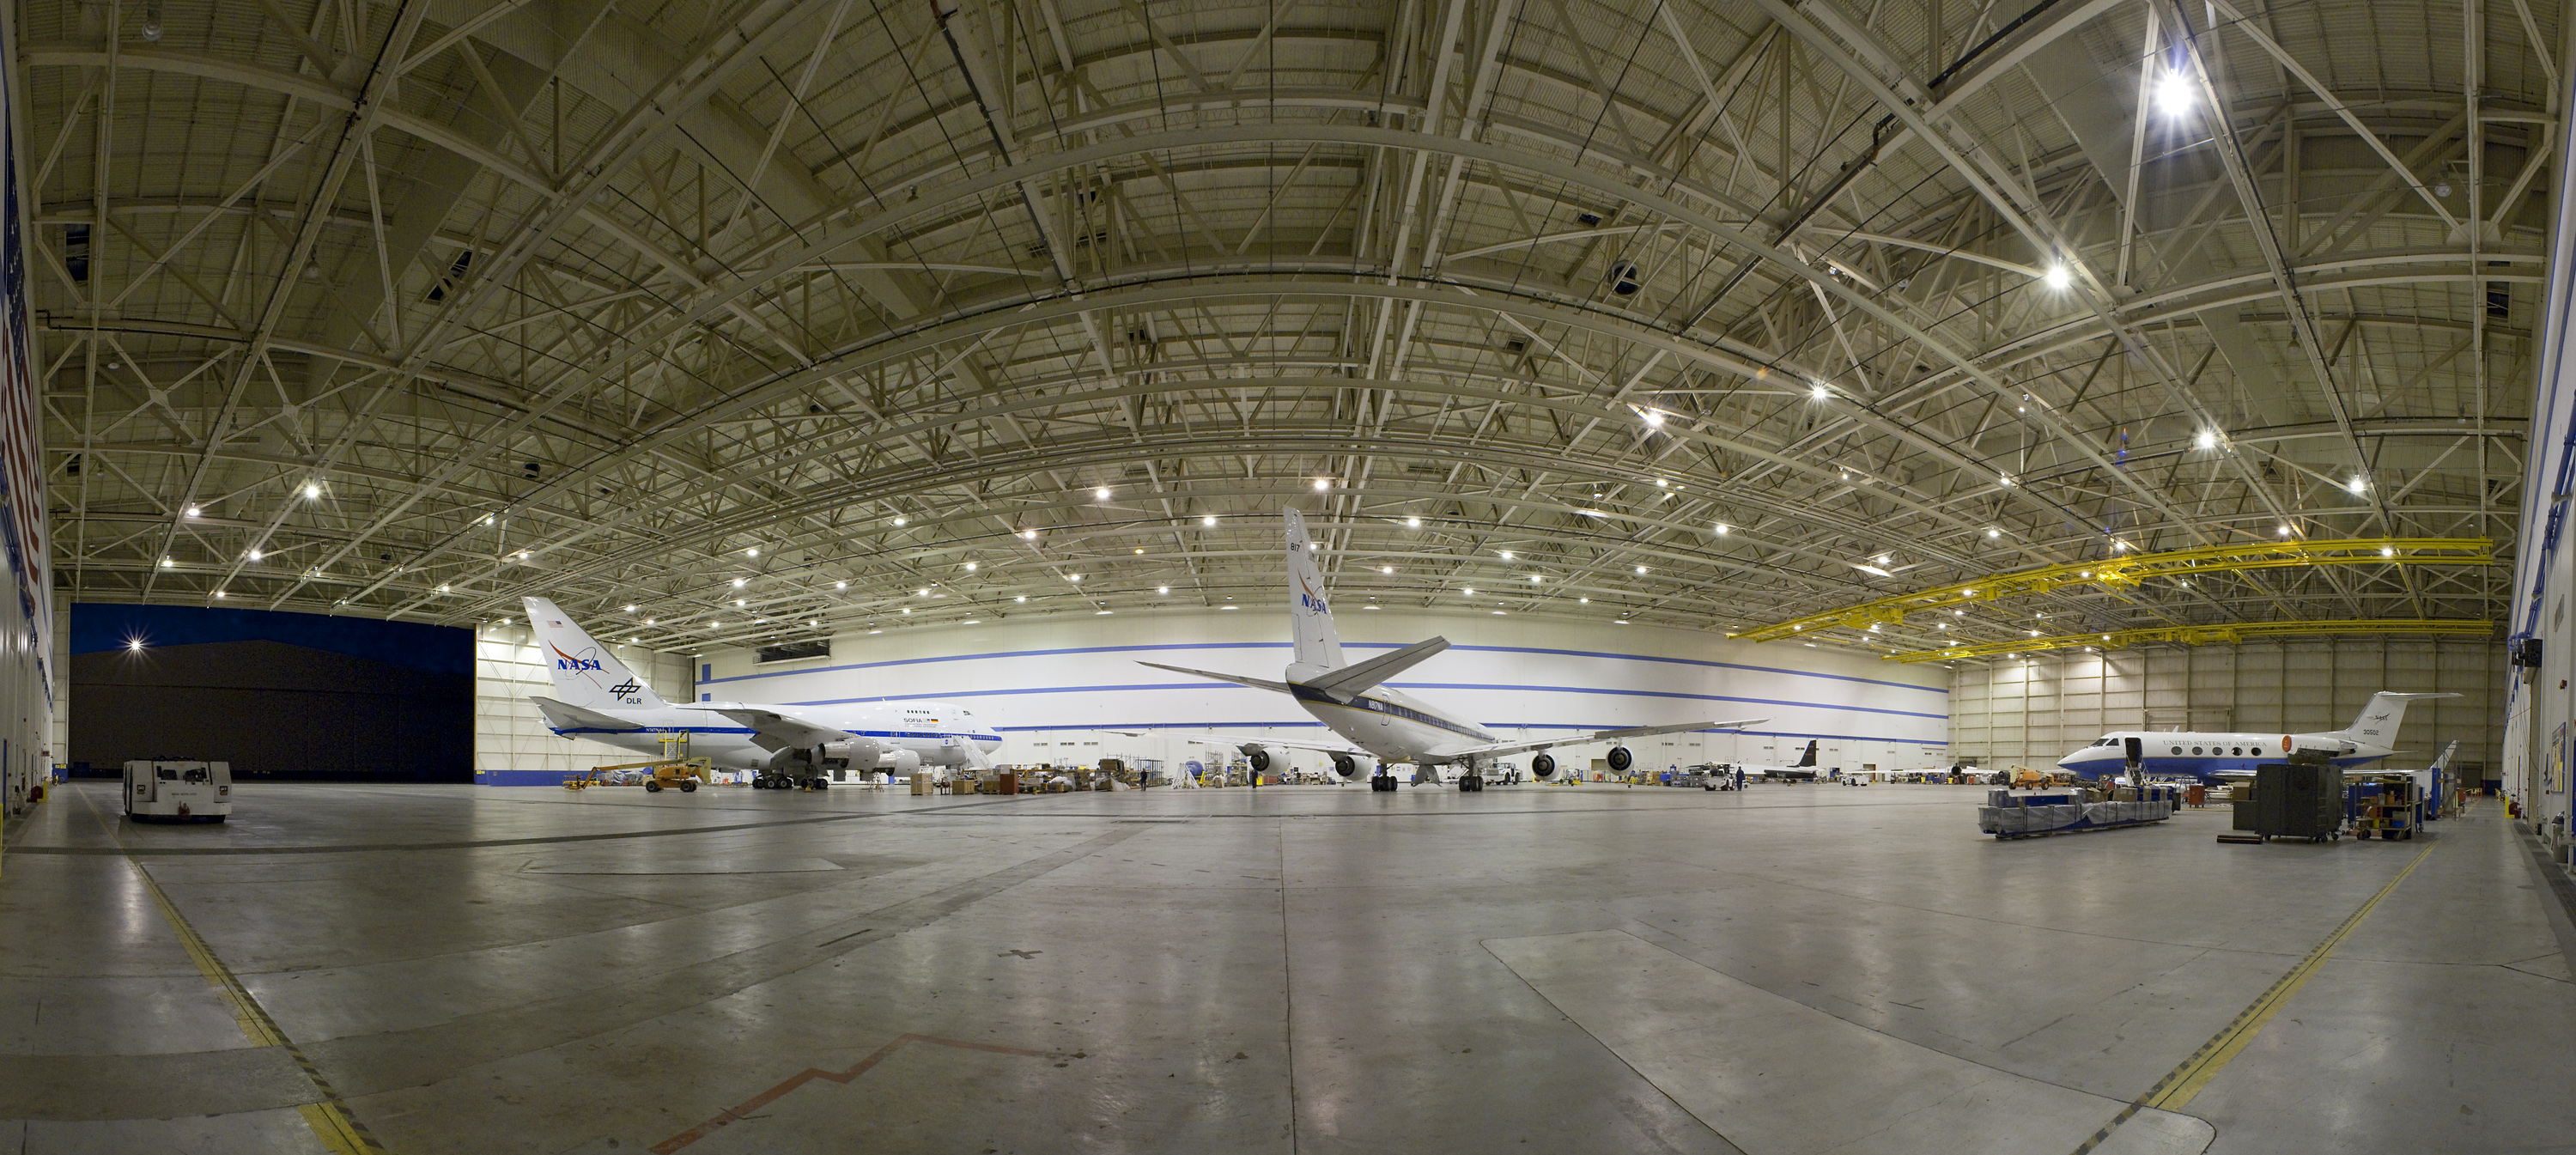 a nasa aircraft in hangar -#main